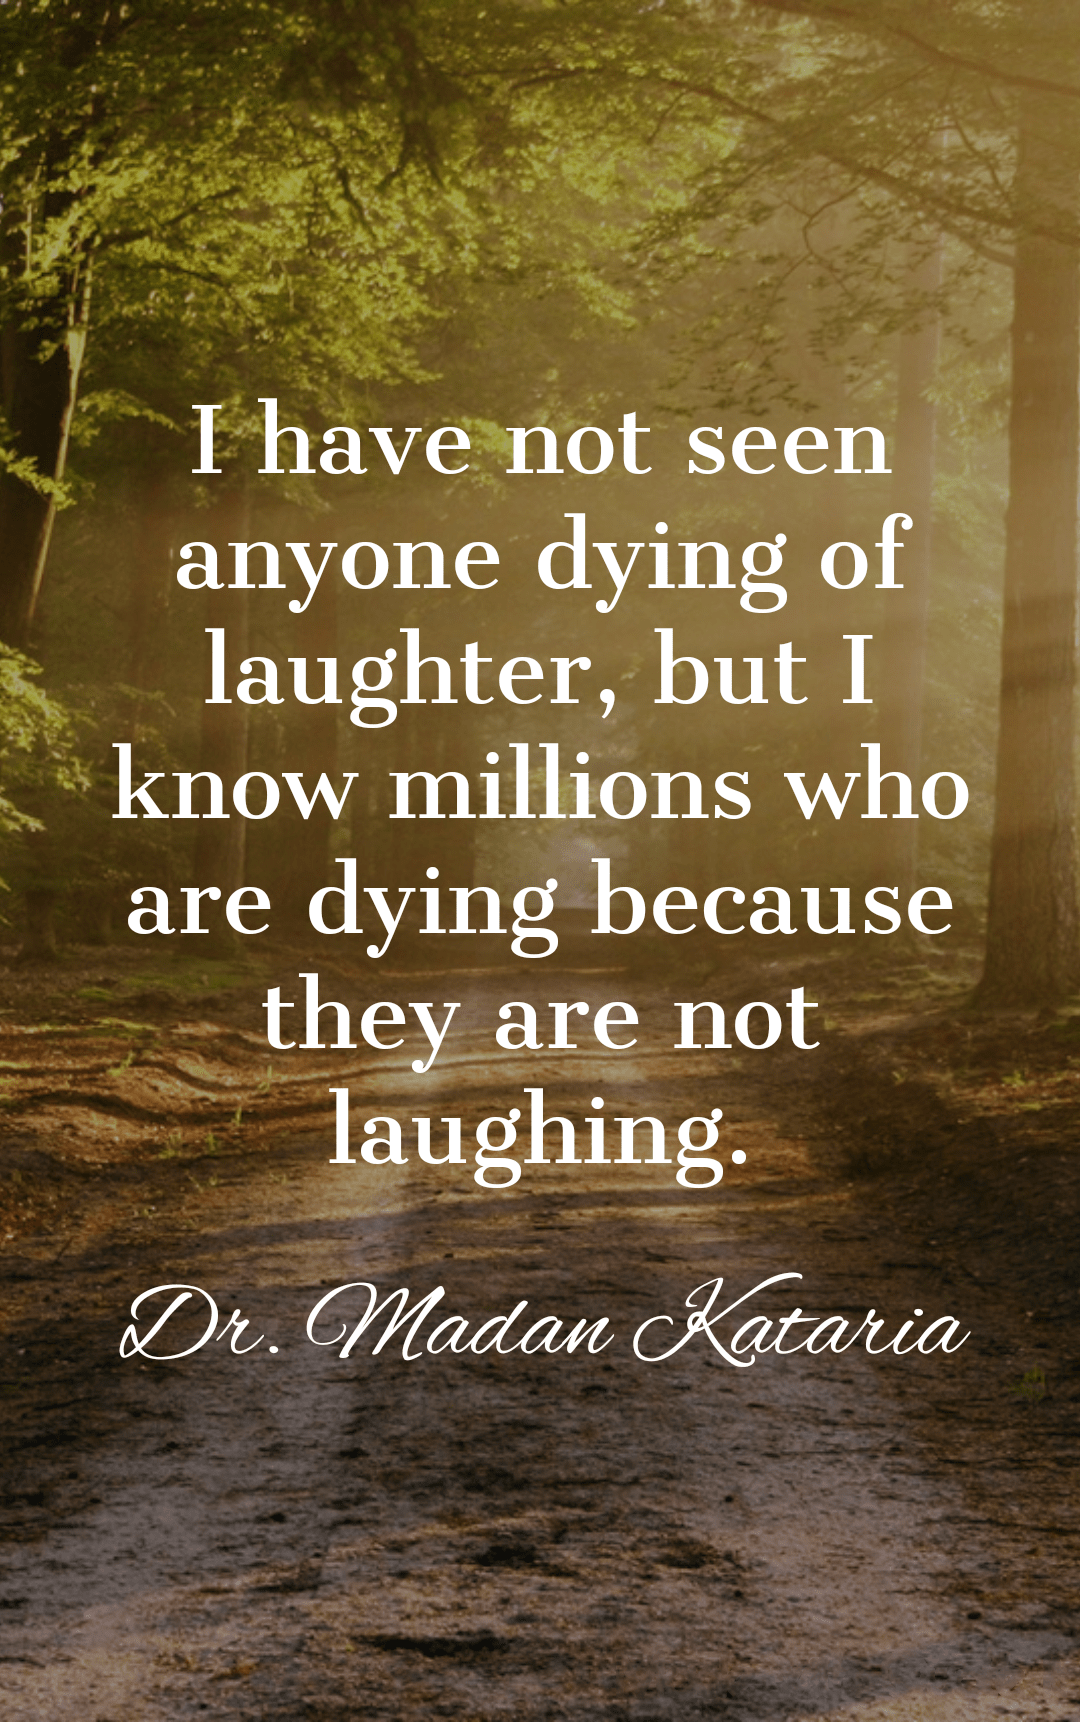 """I have not seen anyone dying of laughter, but I know millions who are dying because they are not laughing."" – Dr. Madan Kataria [1080×1722]"